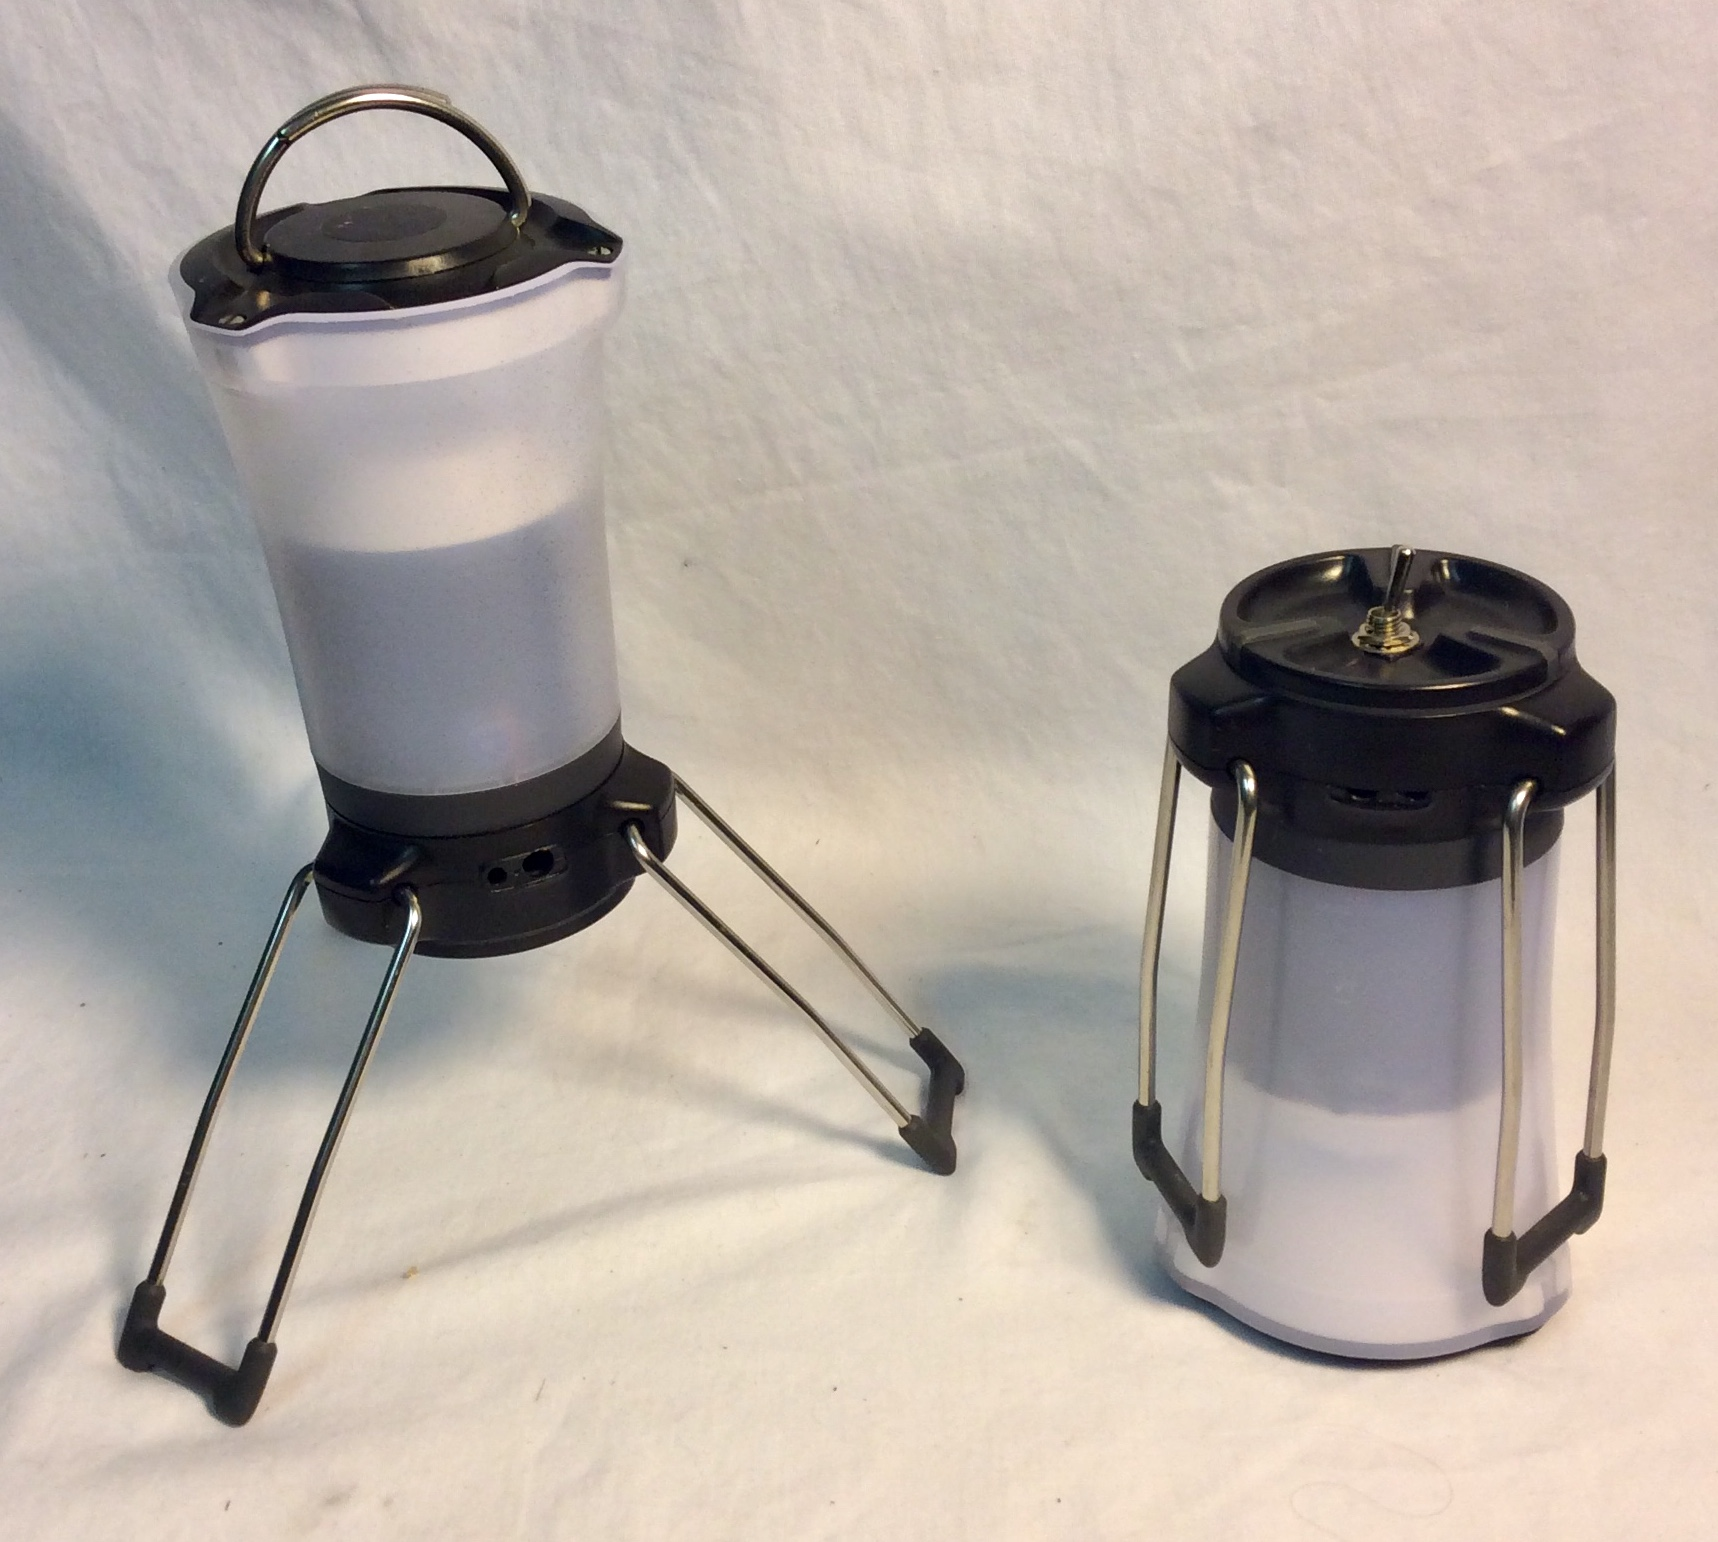 Small Fenix CL 25R lanterns